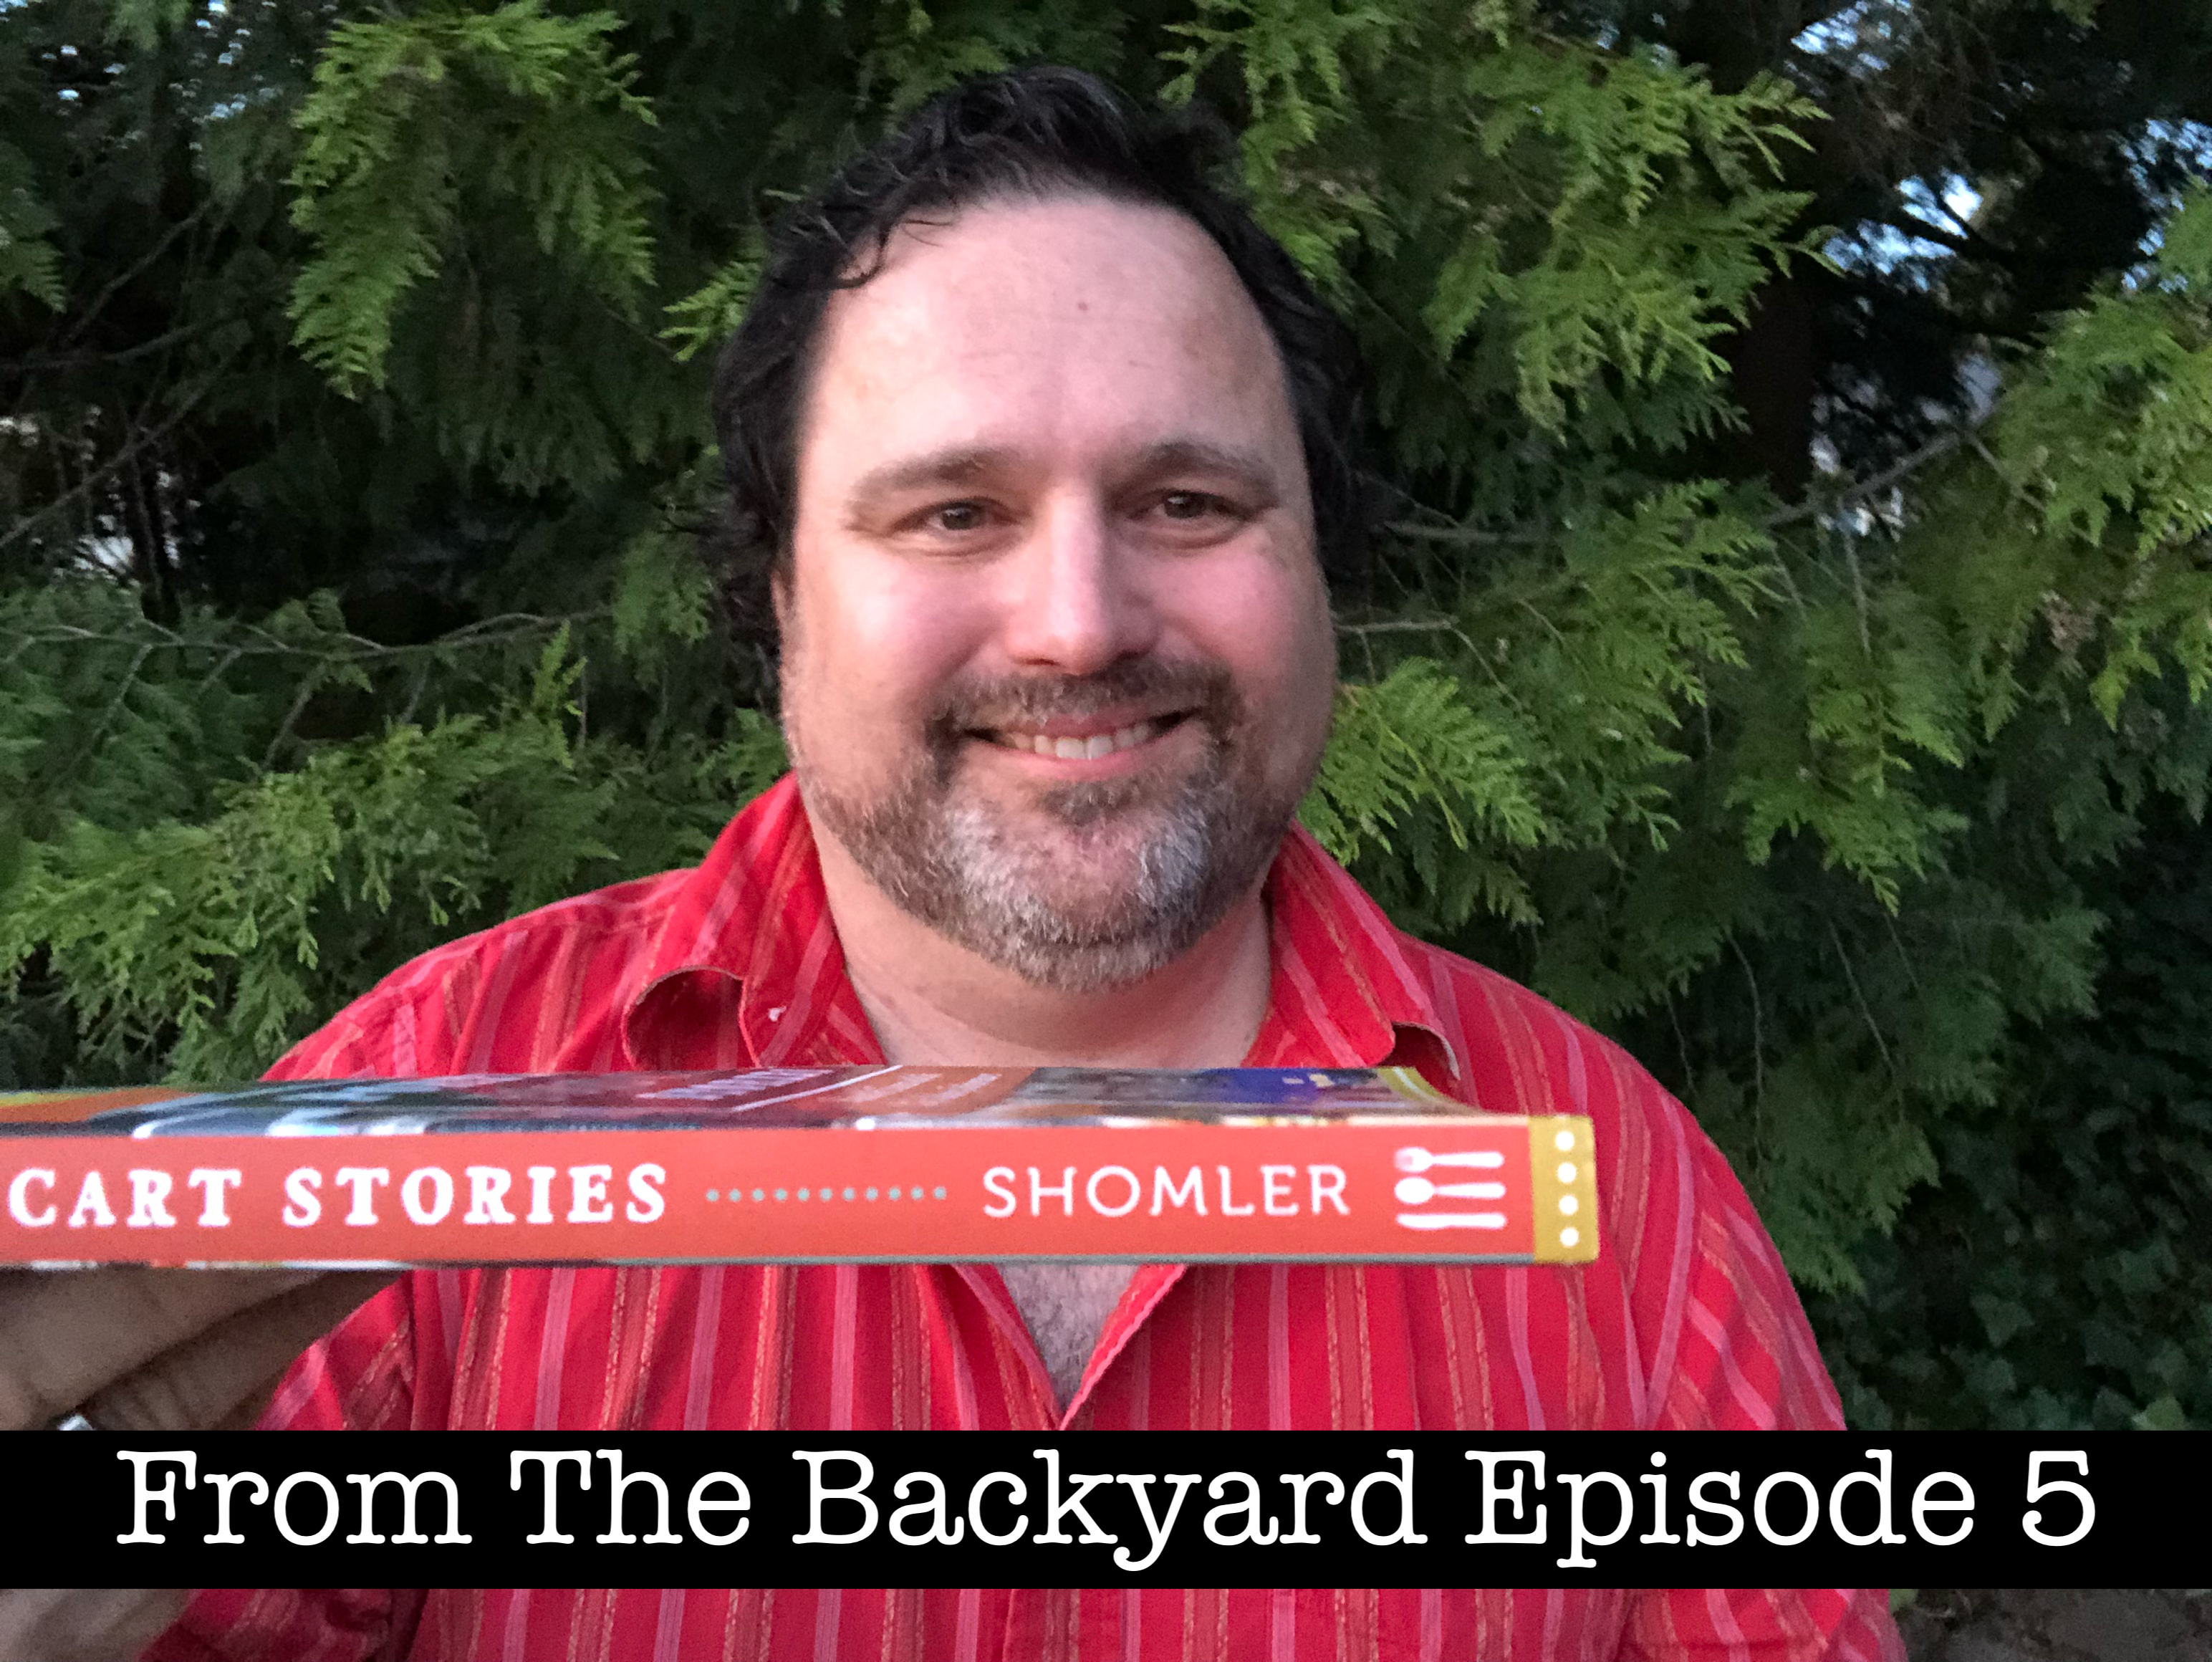 From The Backyard Episode 5 - Can't Be Not Me